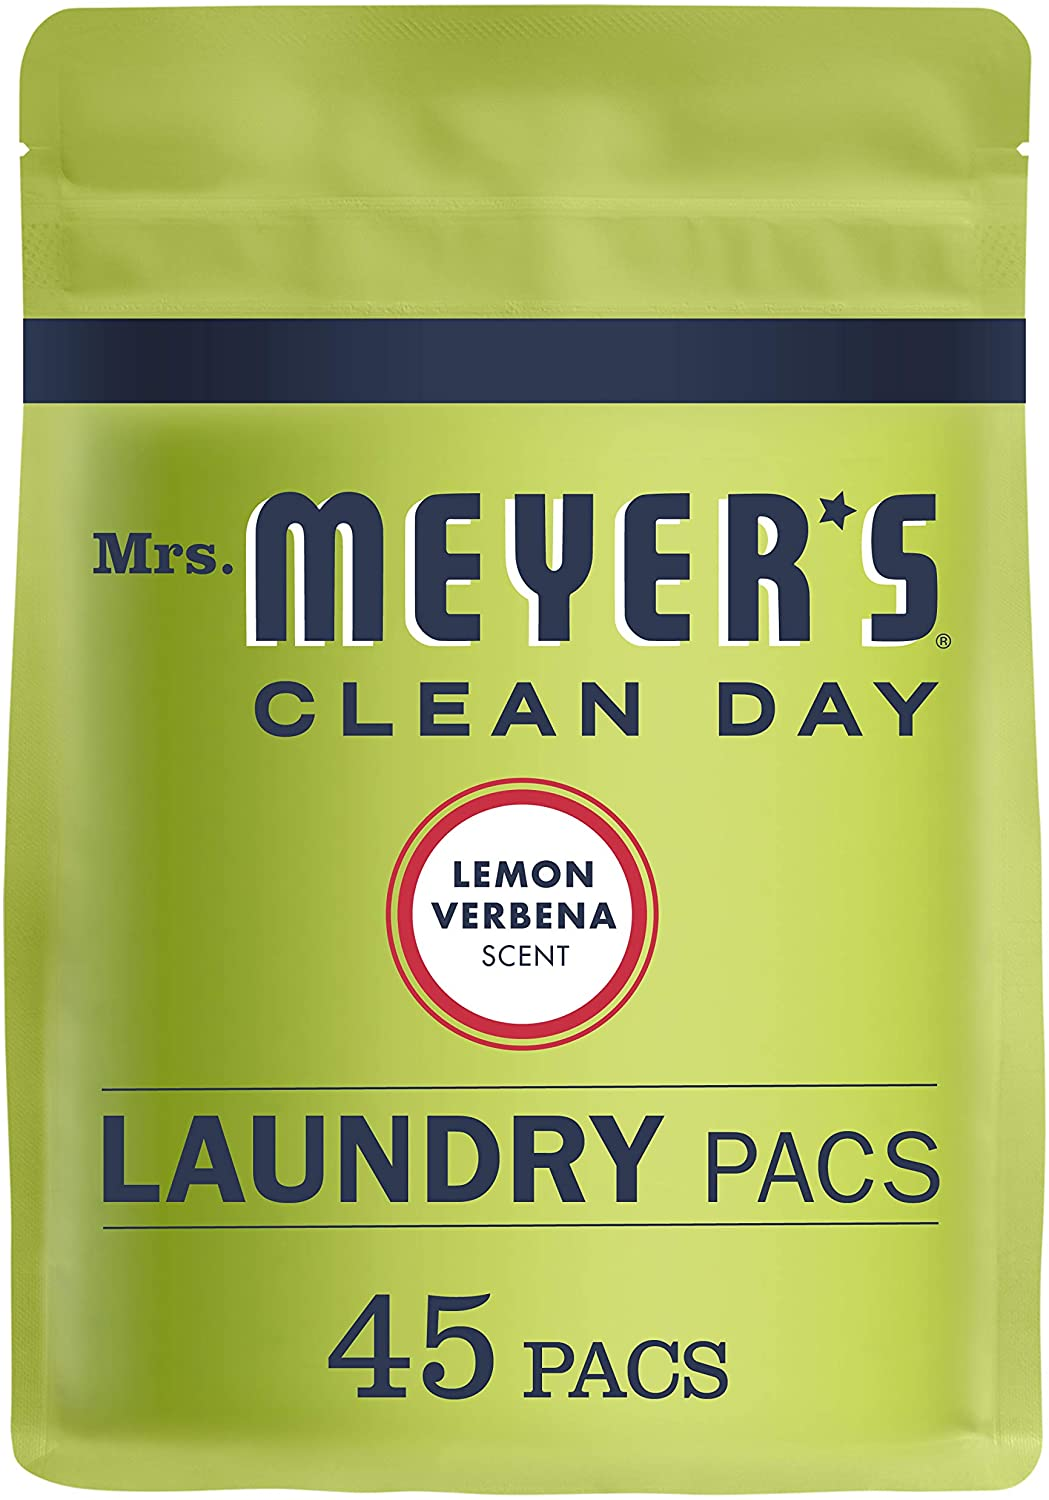 Mrs. Meyer's Clean Day Plant-Derived Laundry Detergent Pods, 45-Count